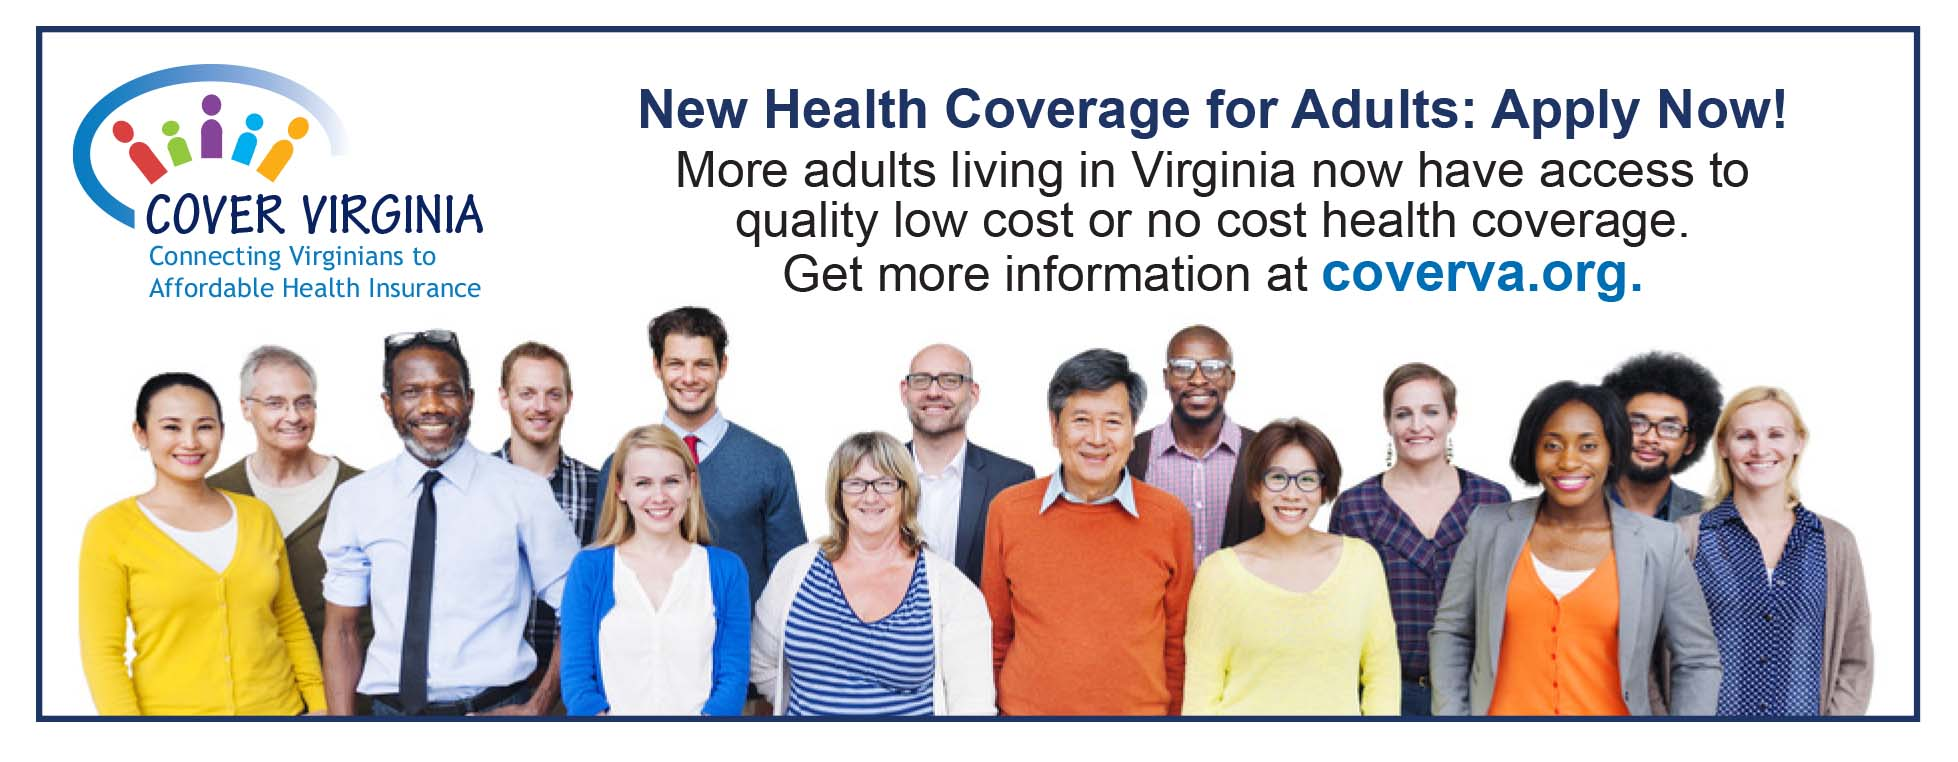 New health coverage for adults living in Virginia